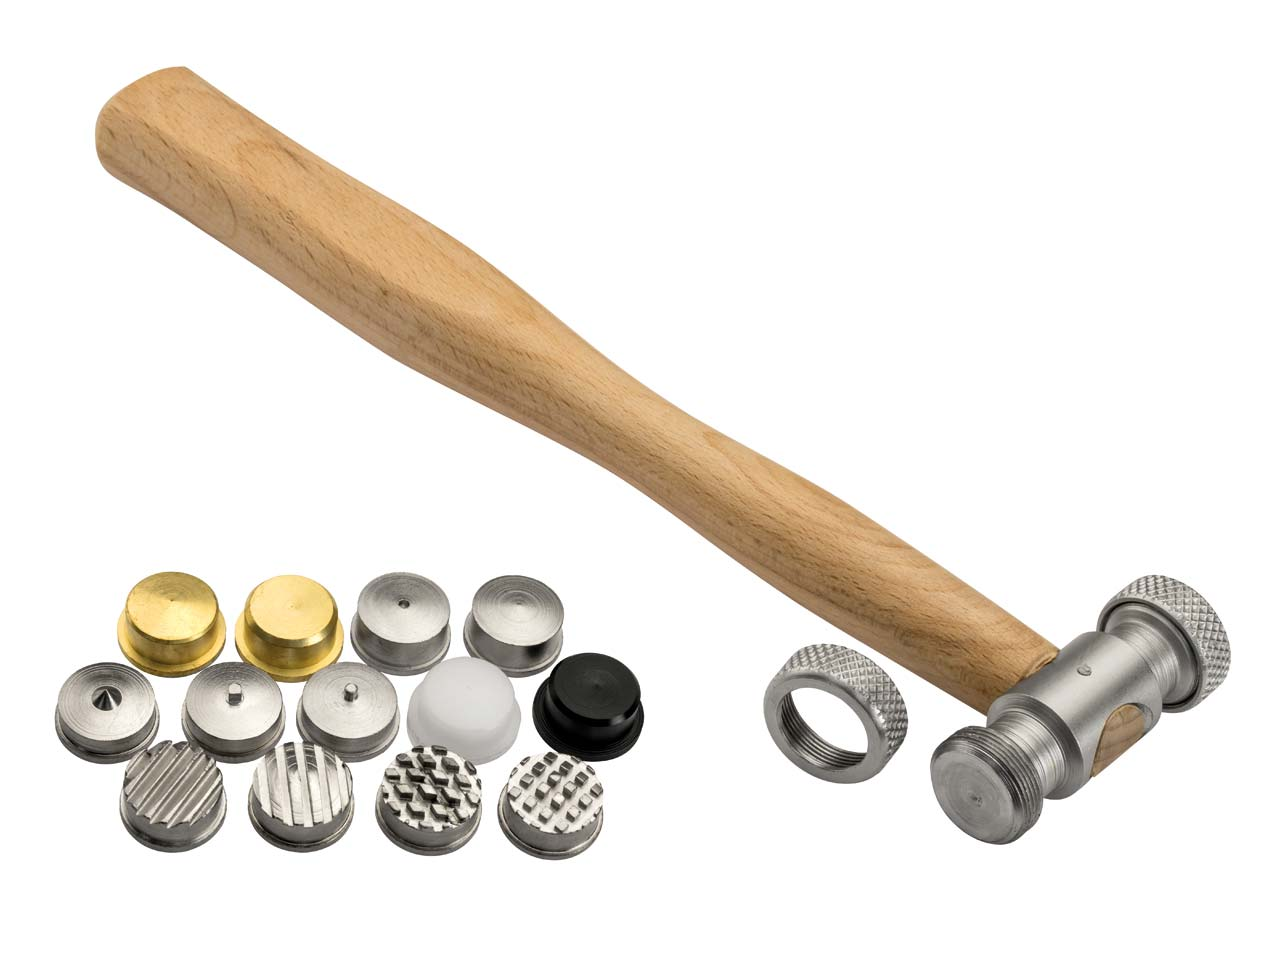 Hammer With 13 Interchangeable Head Inserts